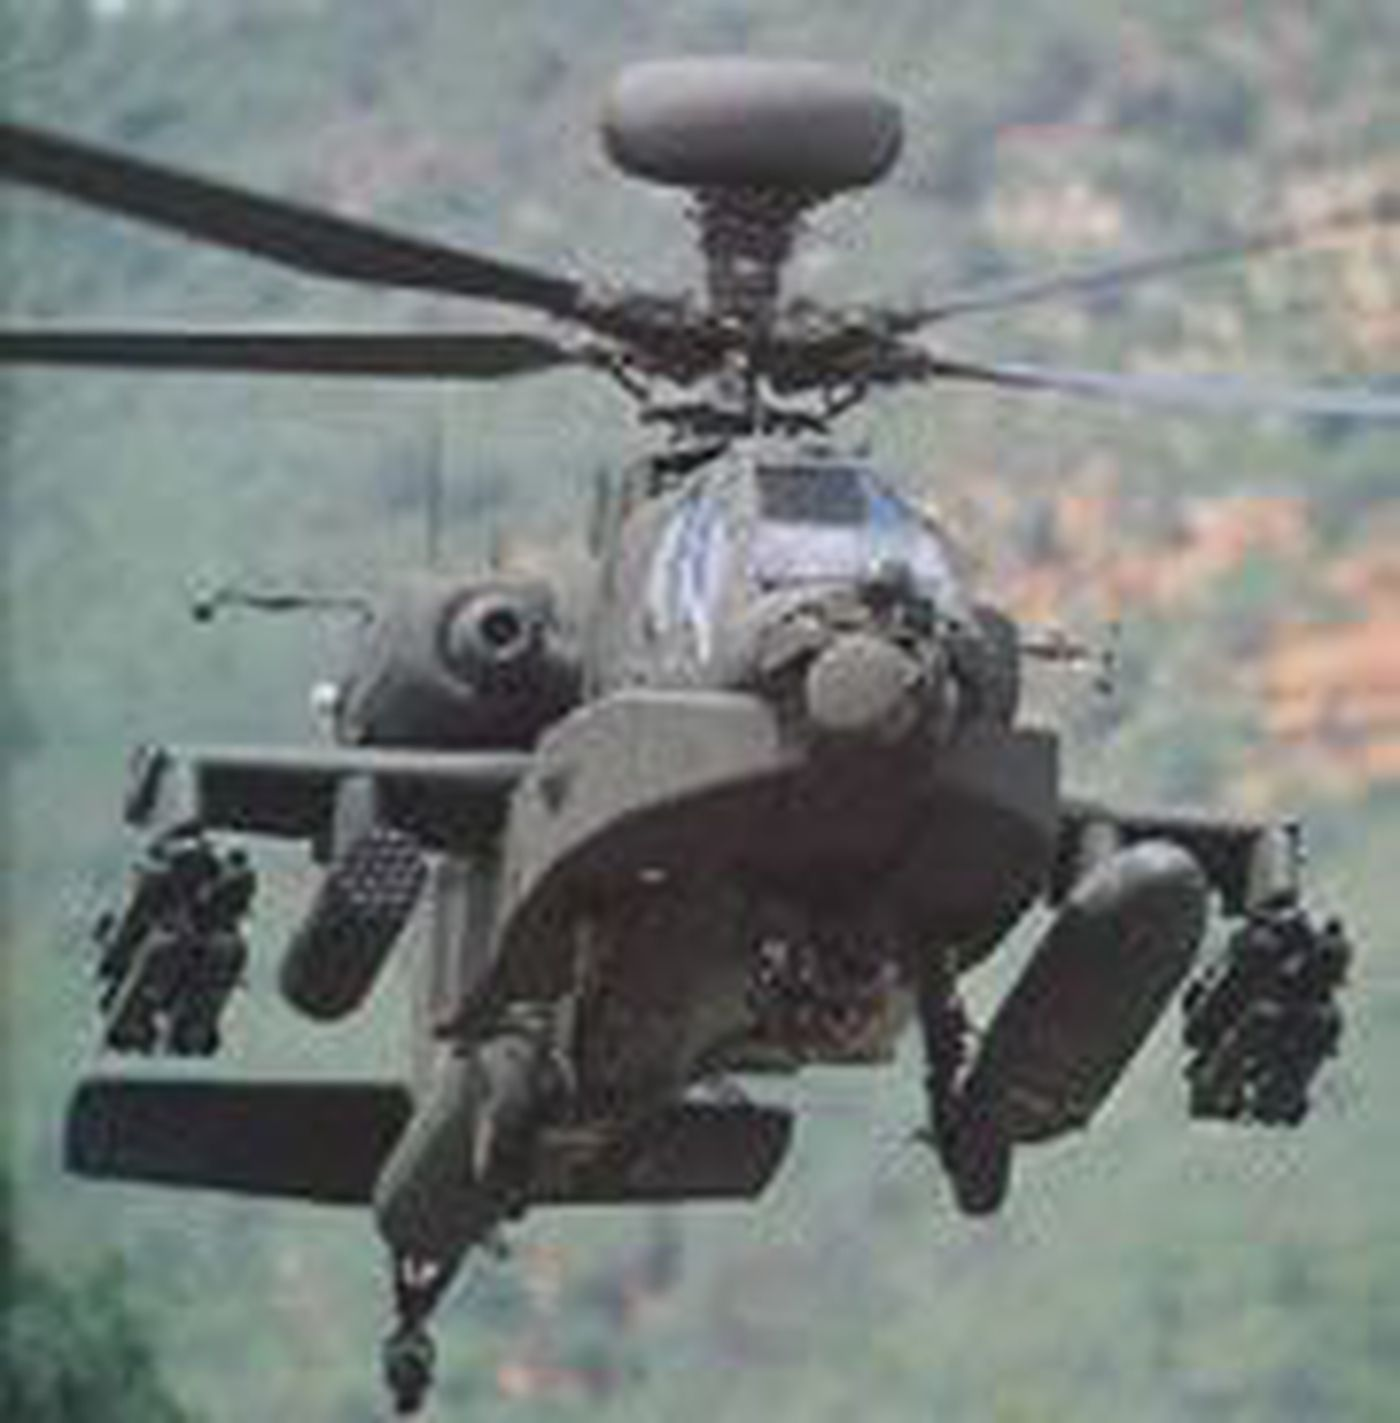 Fort Rucker AH-64D Apache Damaged During Training